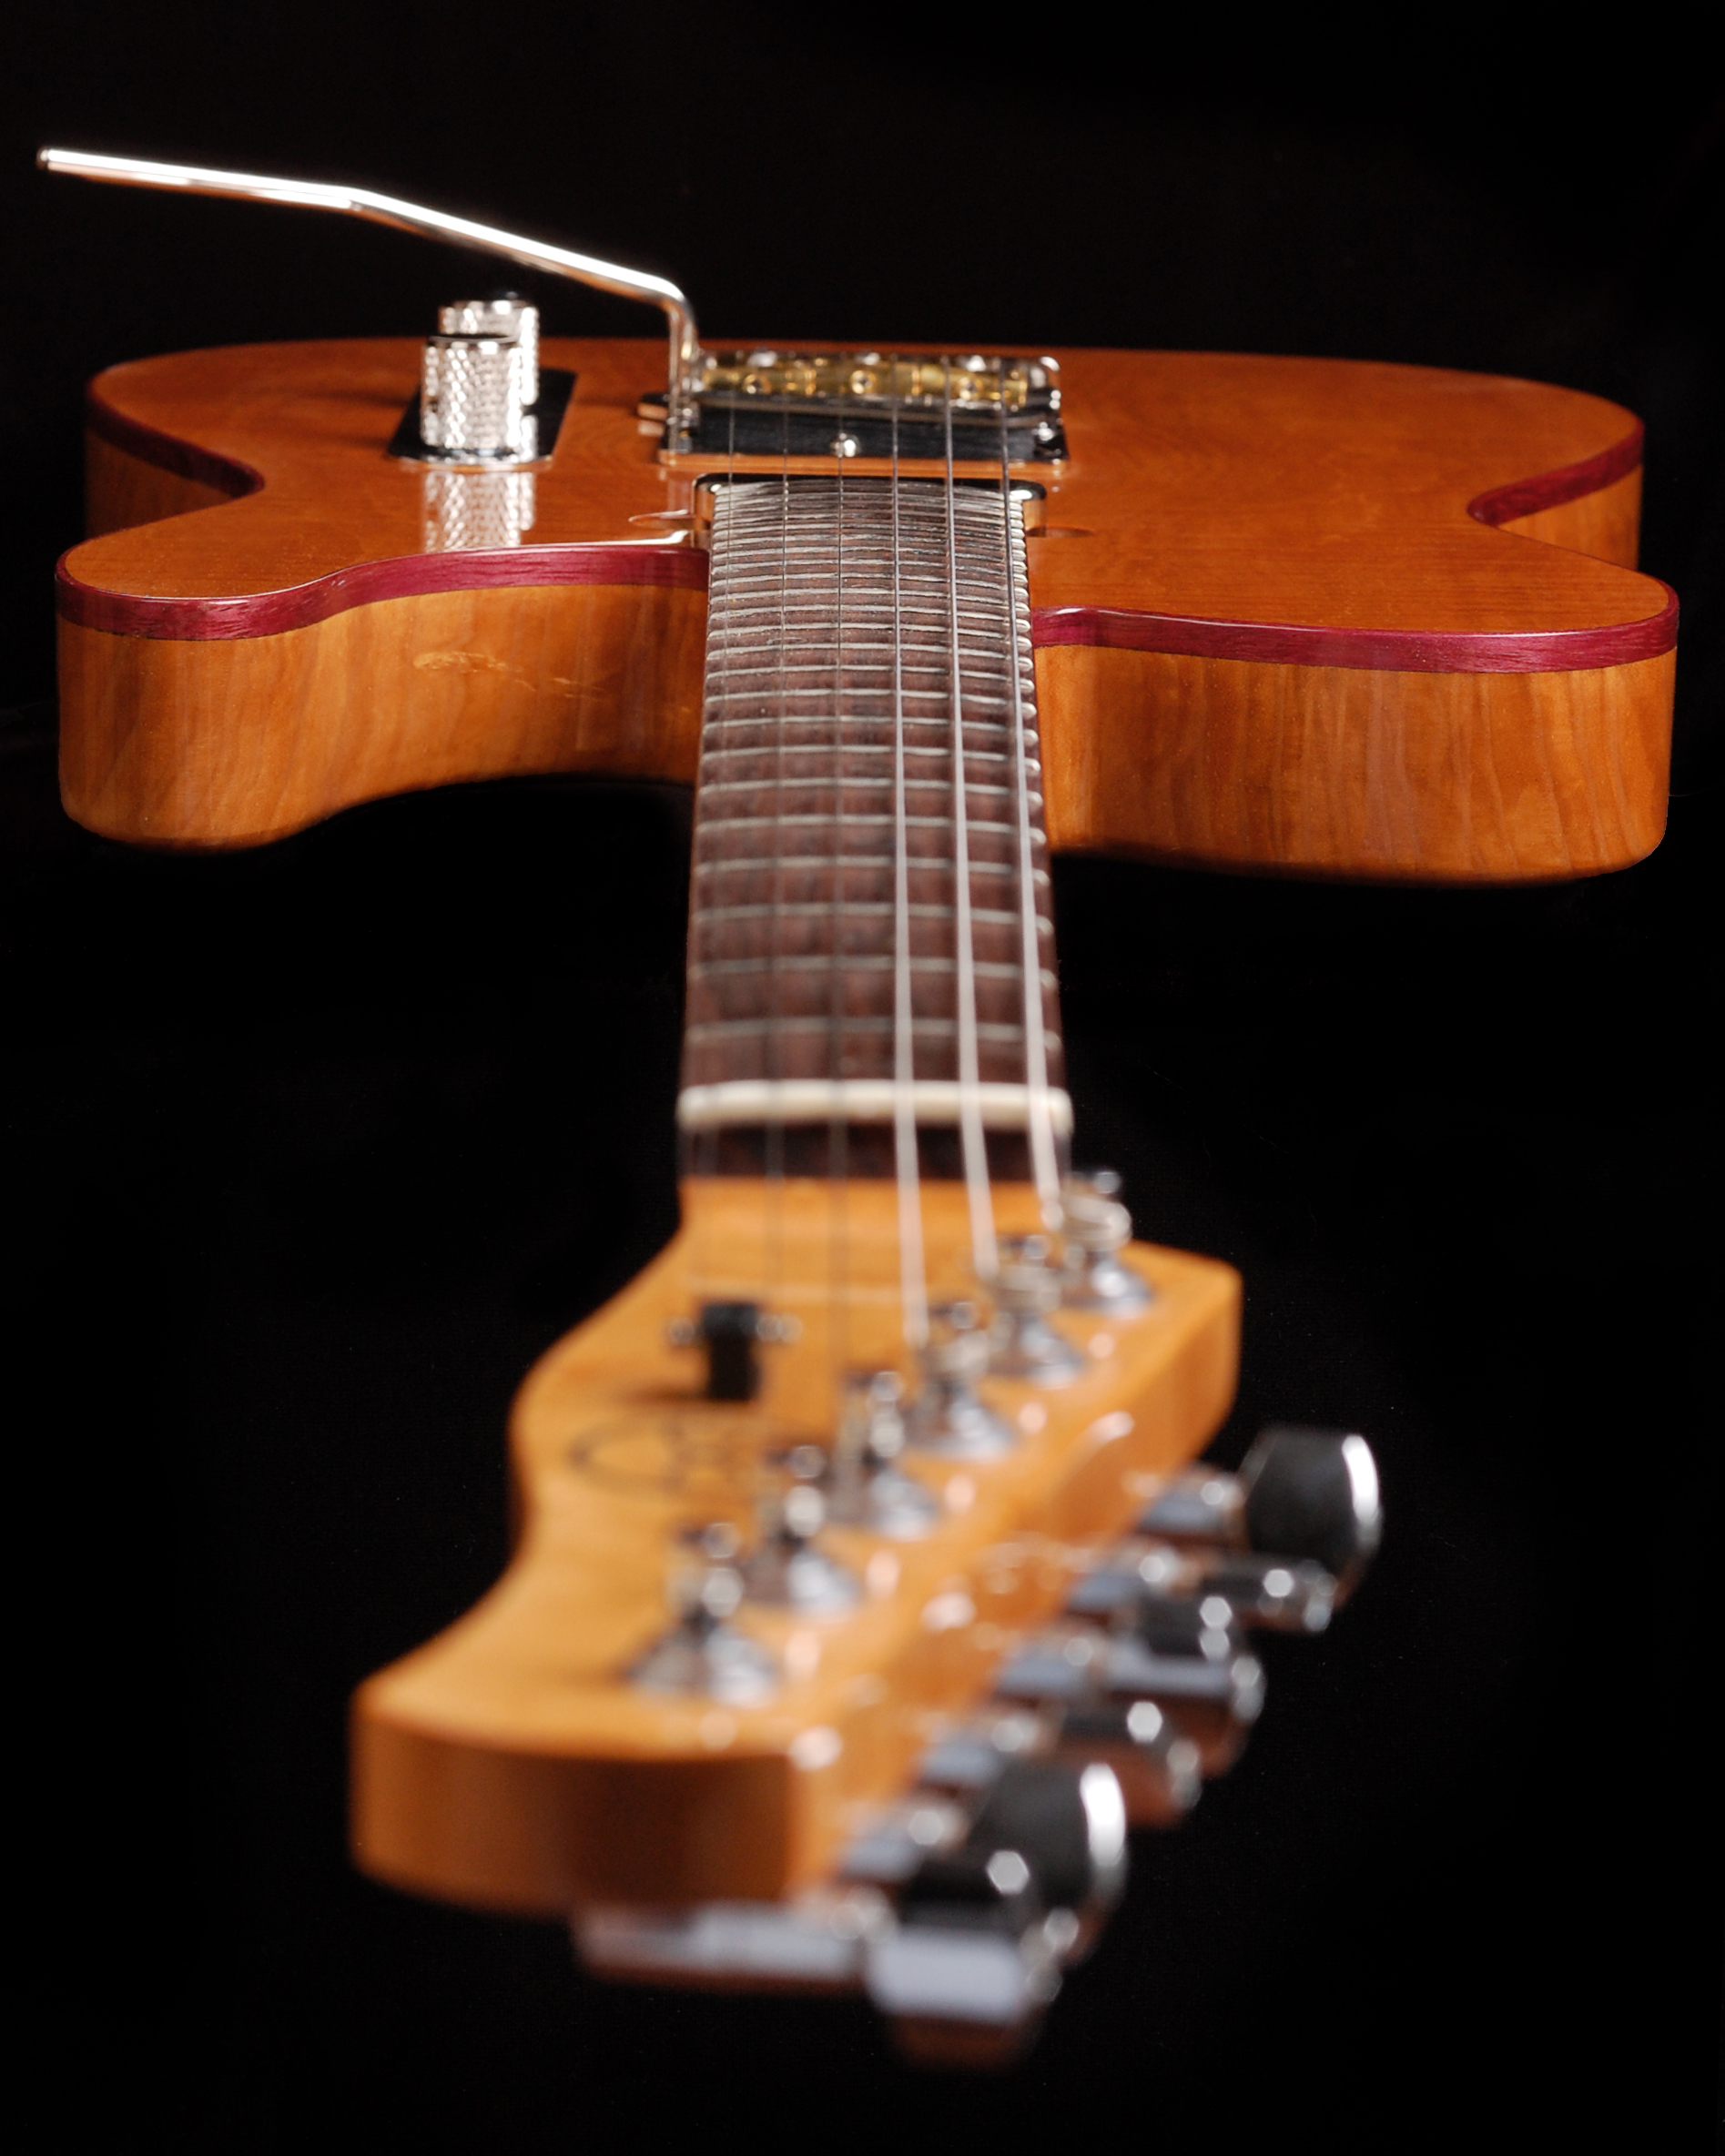 24 Fret Rosewood neck with Deep Access Cutaway